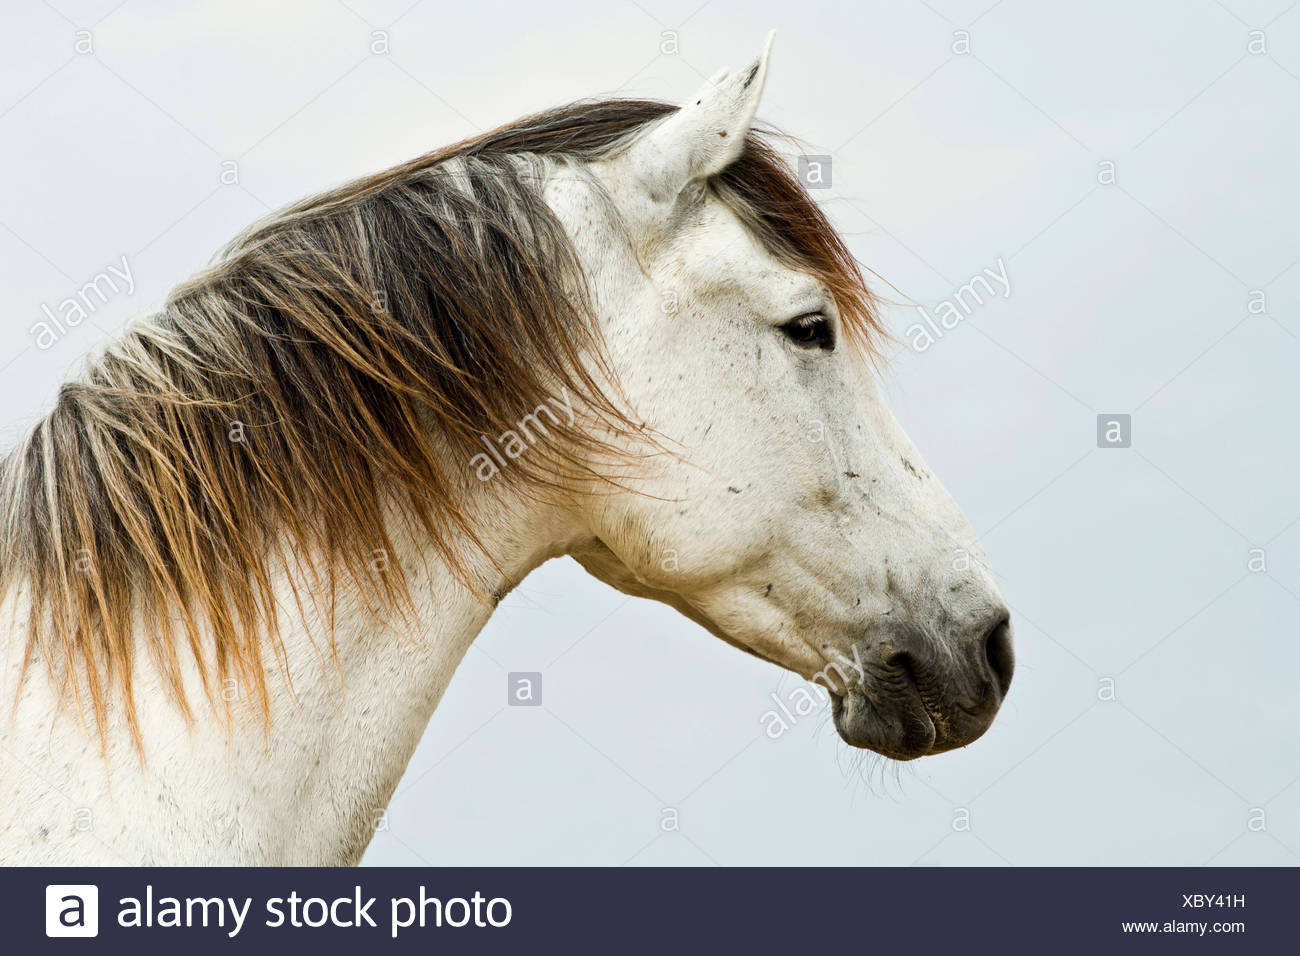 Hongre, cheval lusitanien, White Horse, Andalousie, Espagne Photo Stock